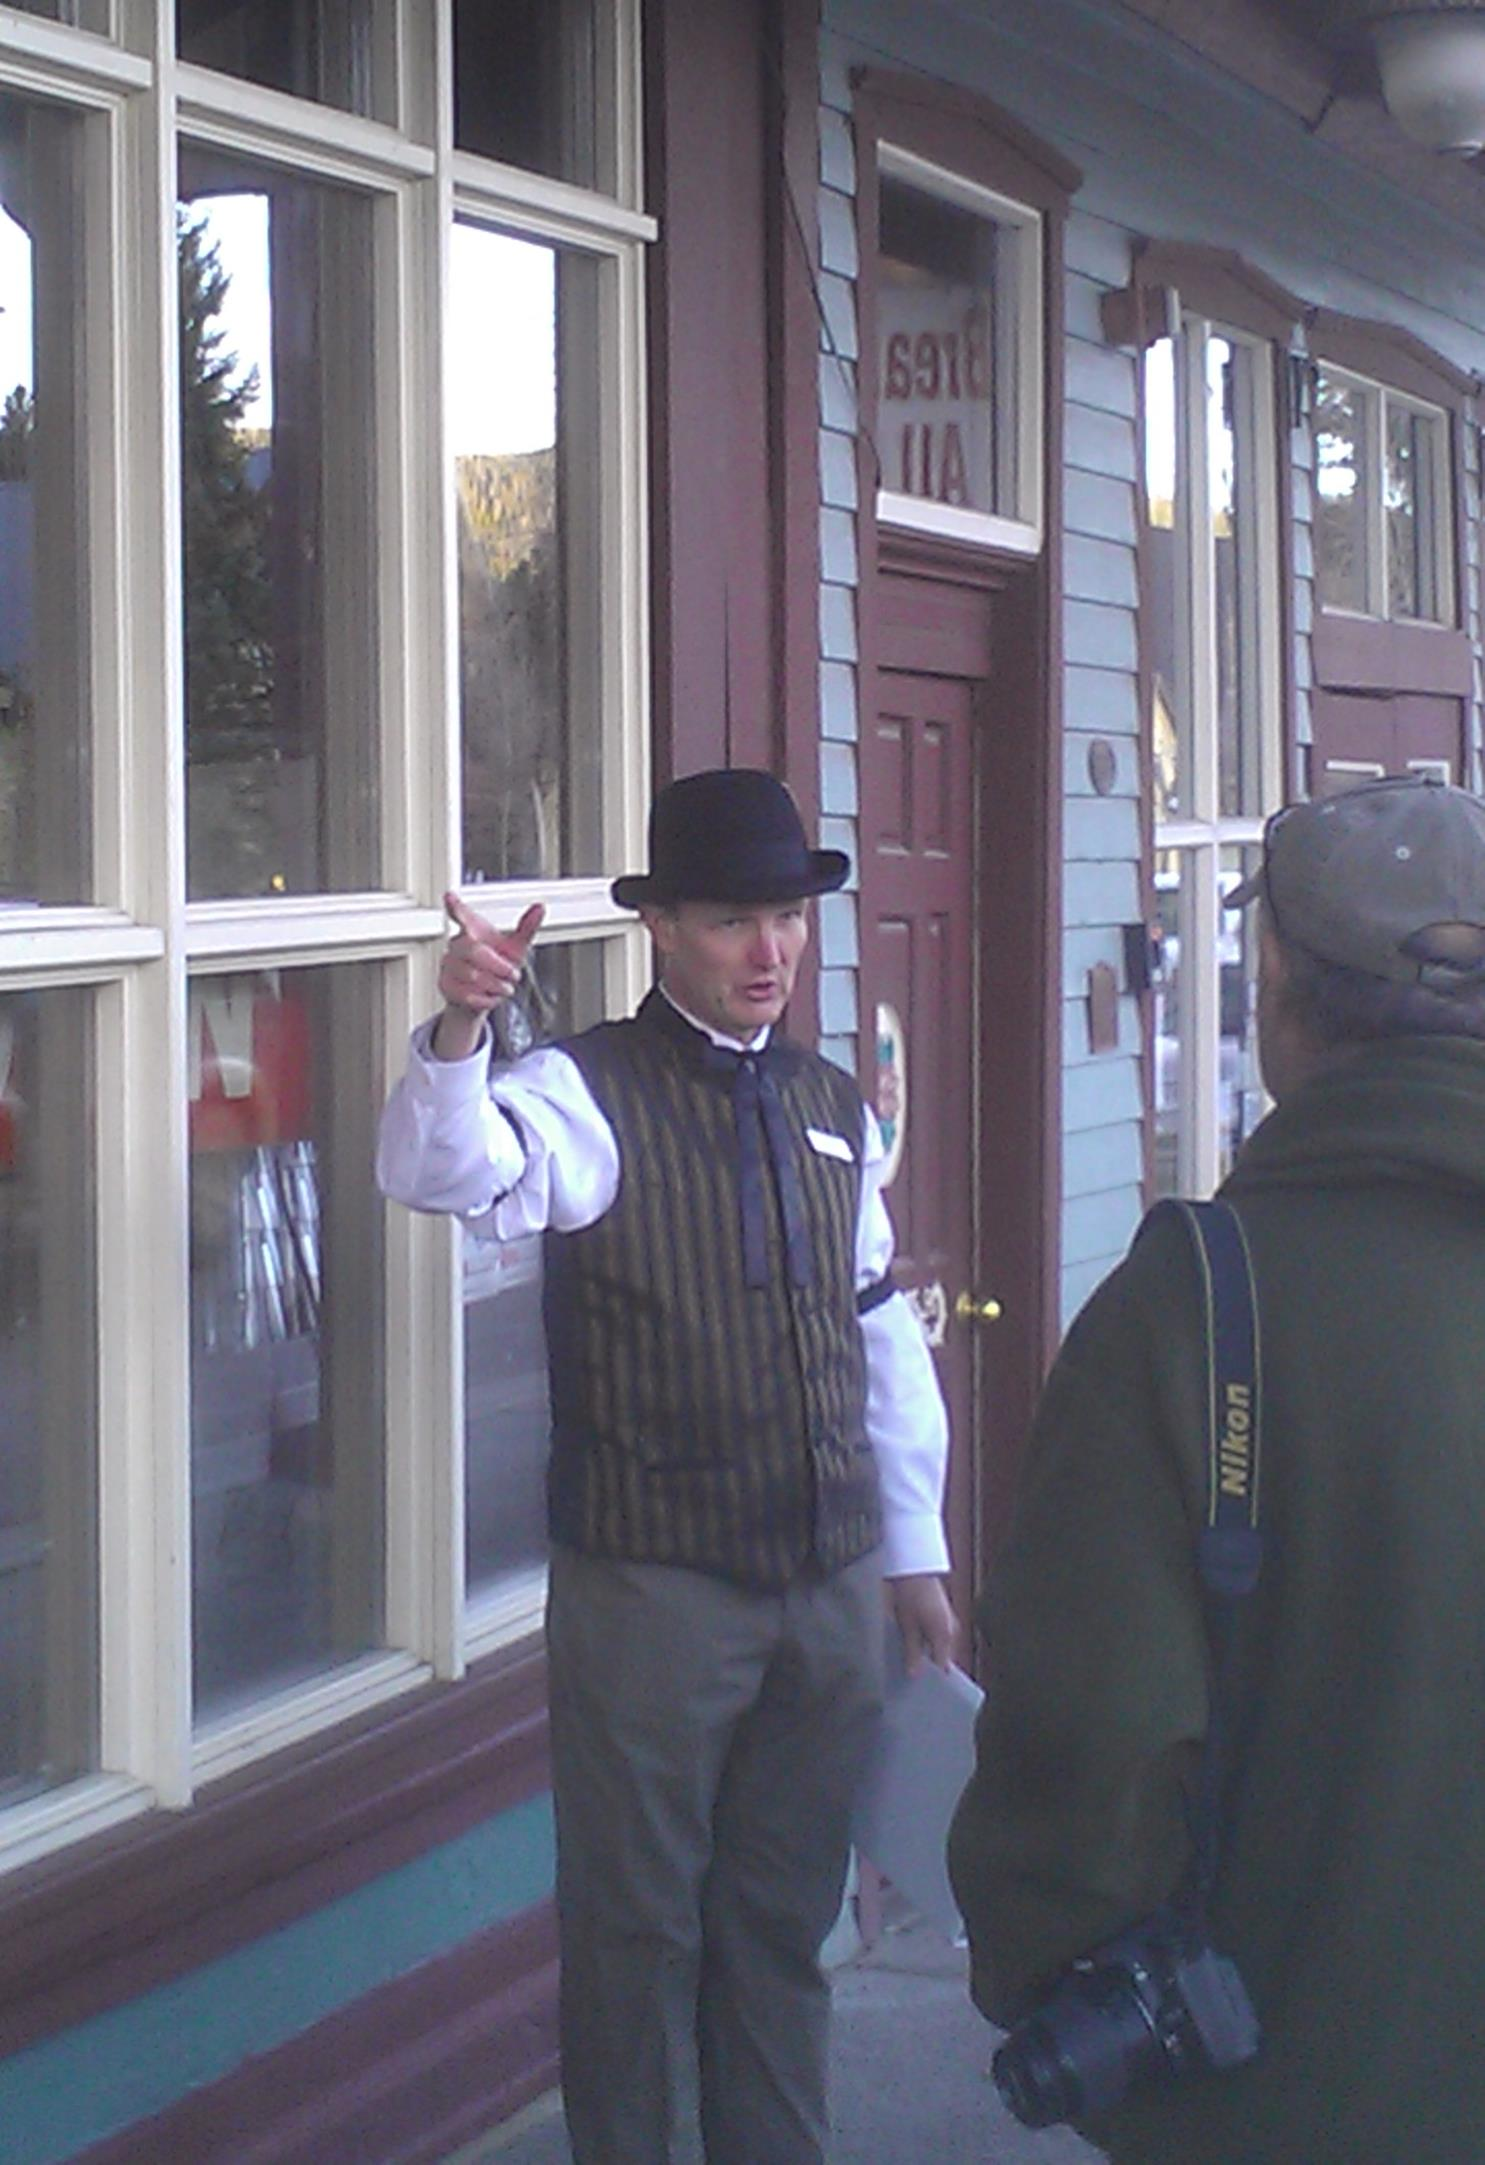 A tour guide dressed in historic costume discusses the history of Breckenridge's saloons.